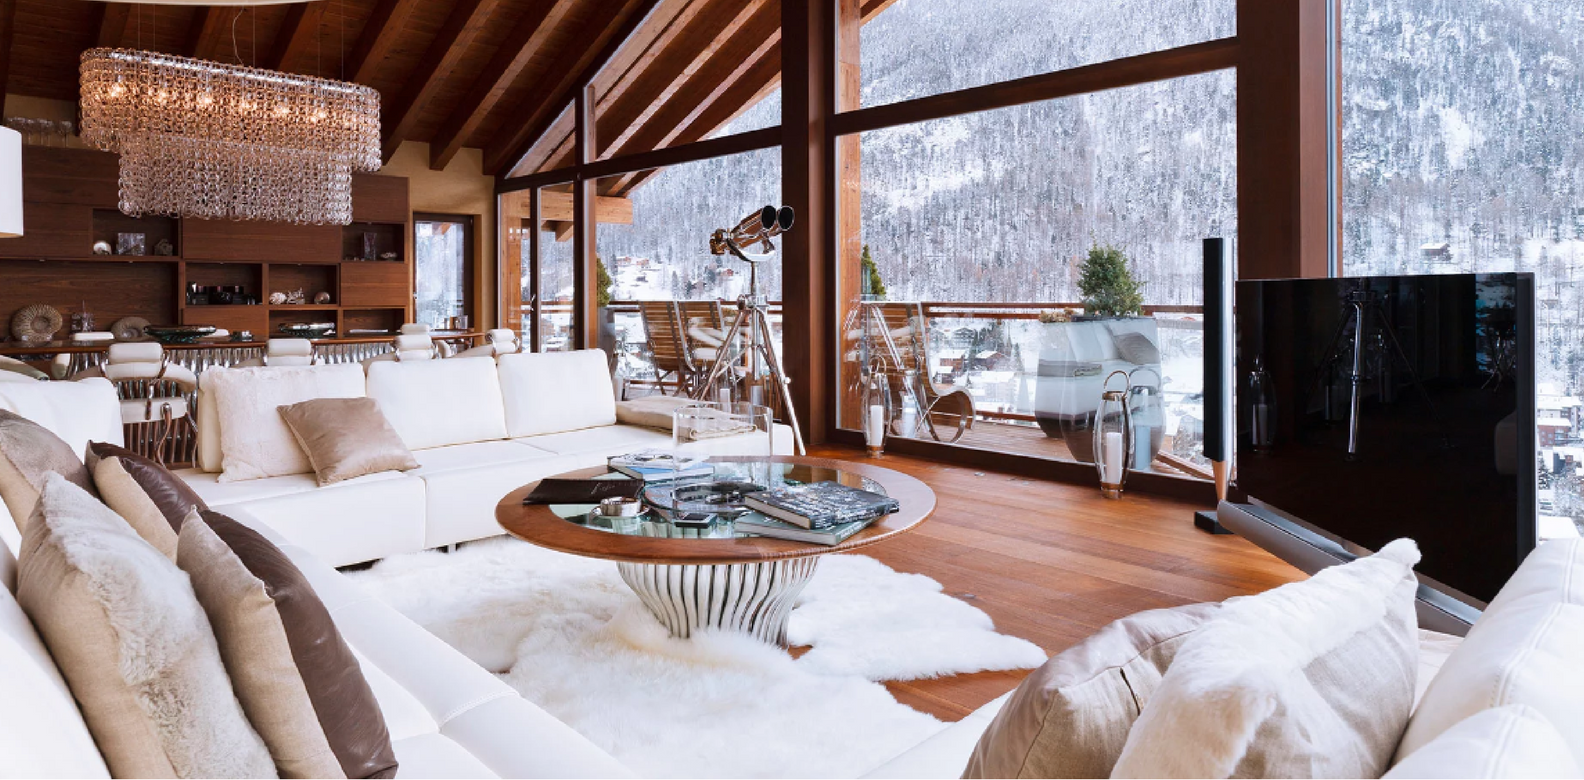 7 Luxury Ski Chalets In Europe To Elevate Your Next Ski